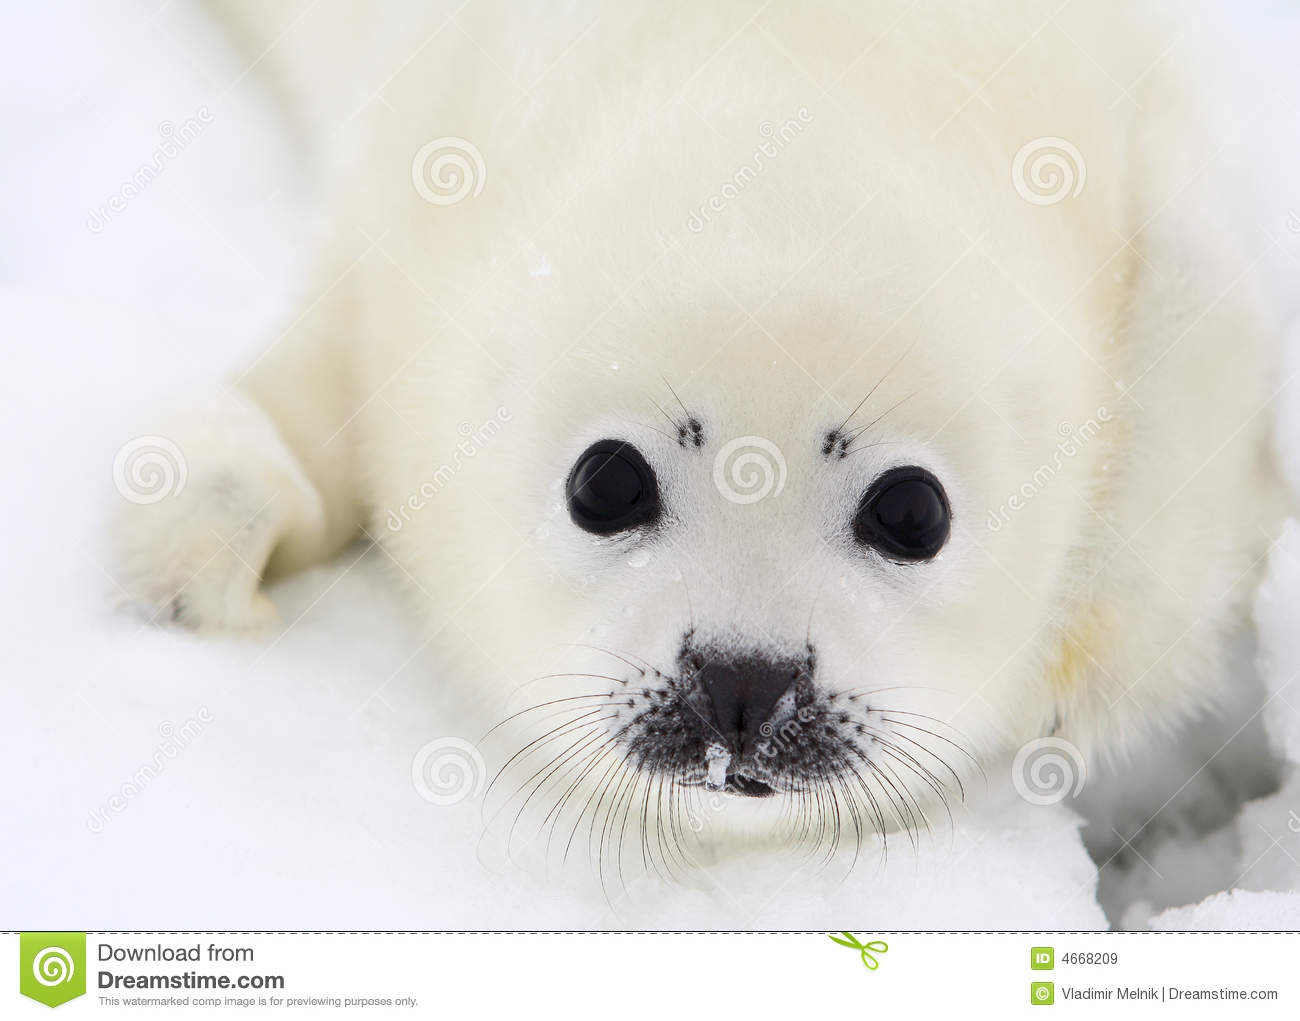 Newborn Harp Seal Pup Royalty Free Stock Images   Image  4668209